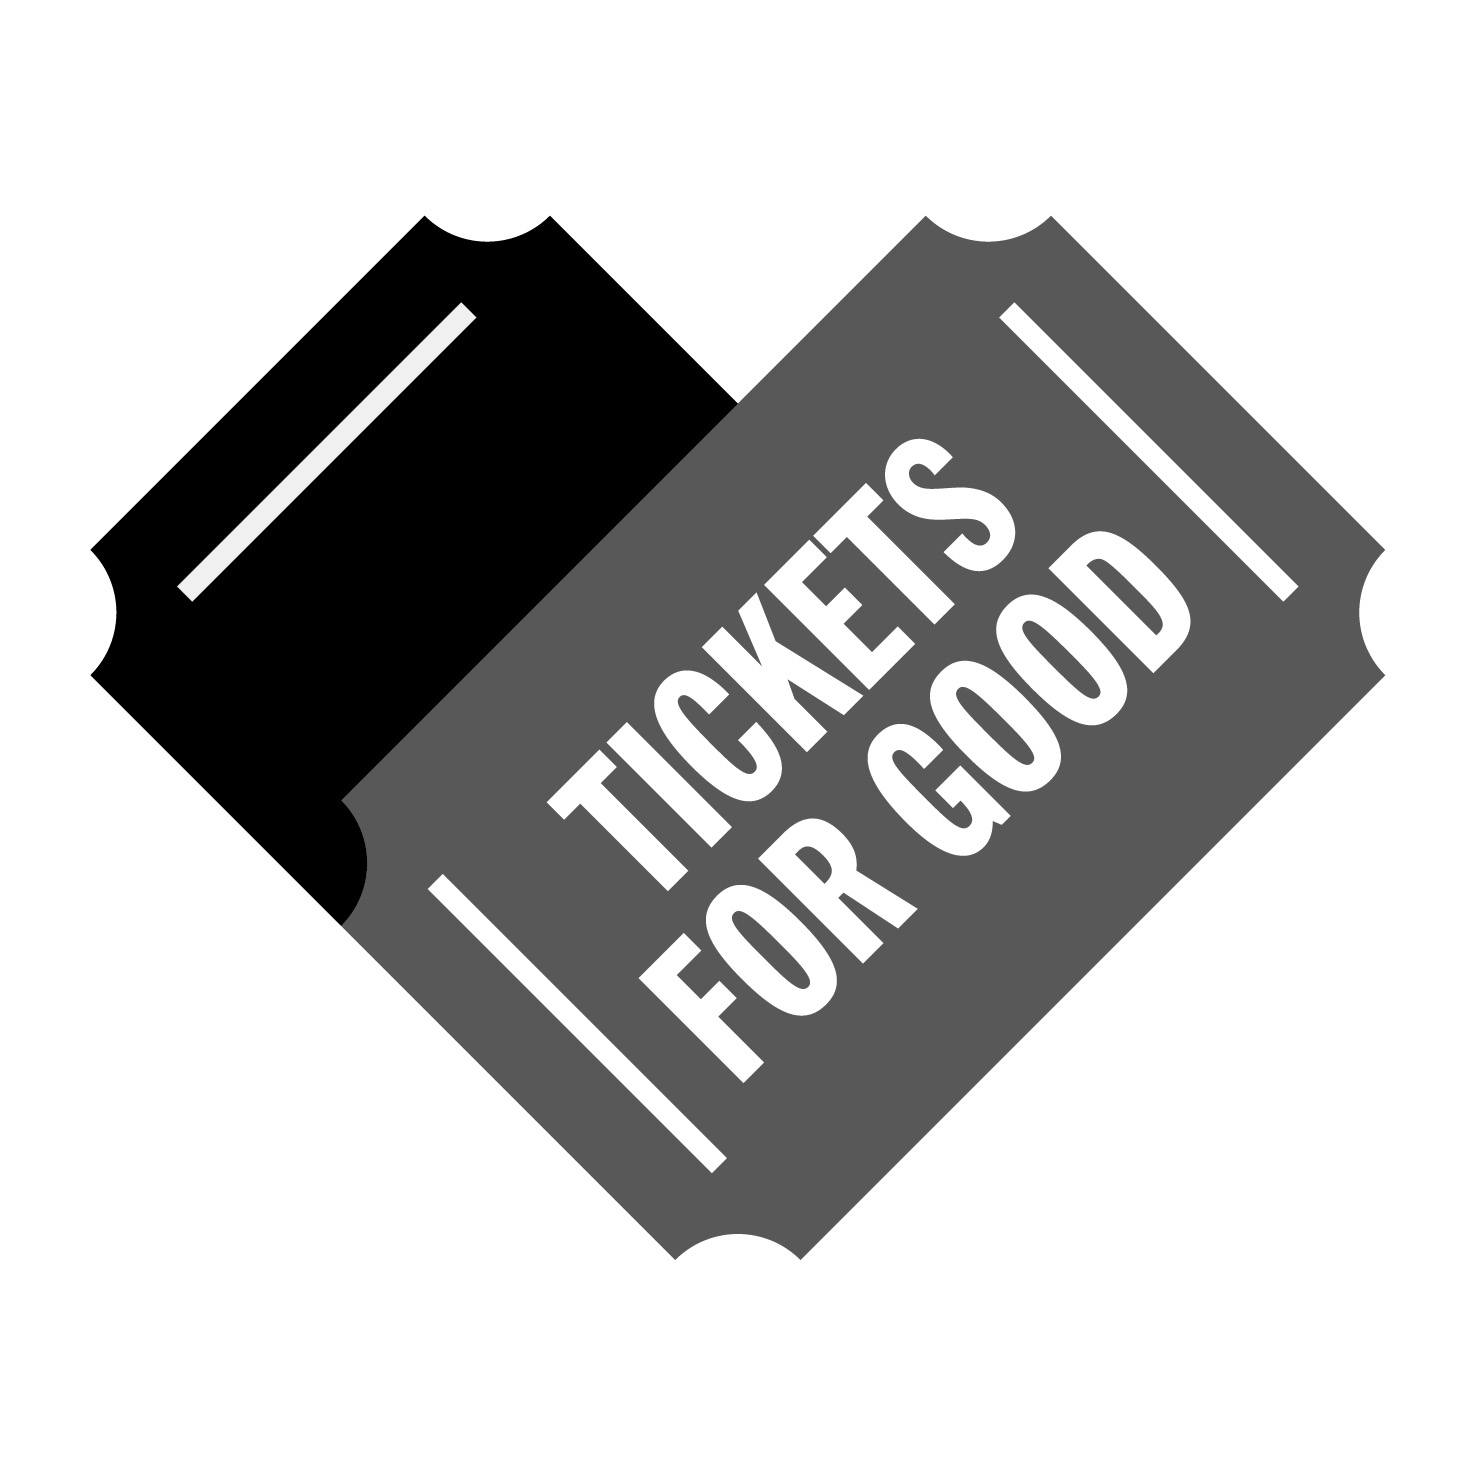 Introducing Tickets for Good (Lunch and Learn) - Tickets for Good header image